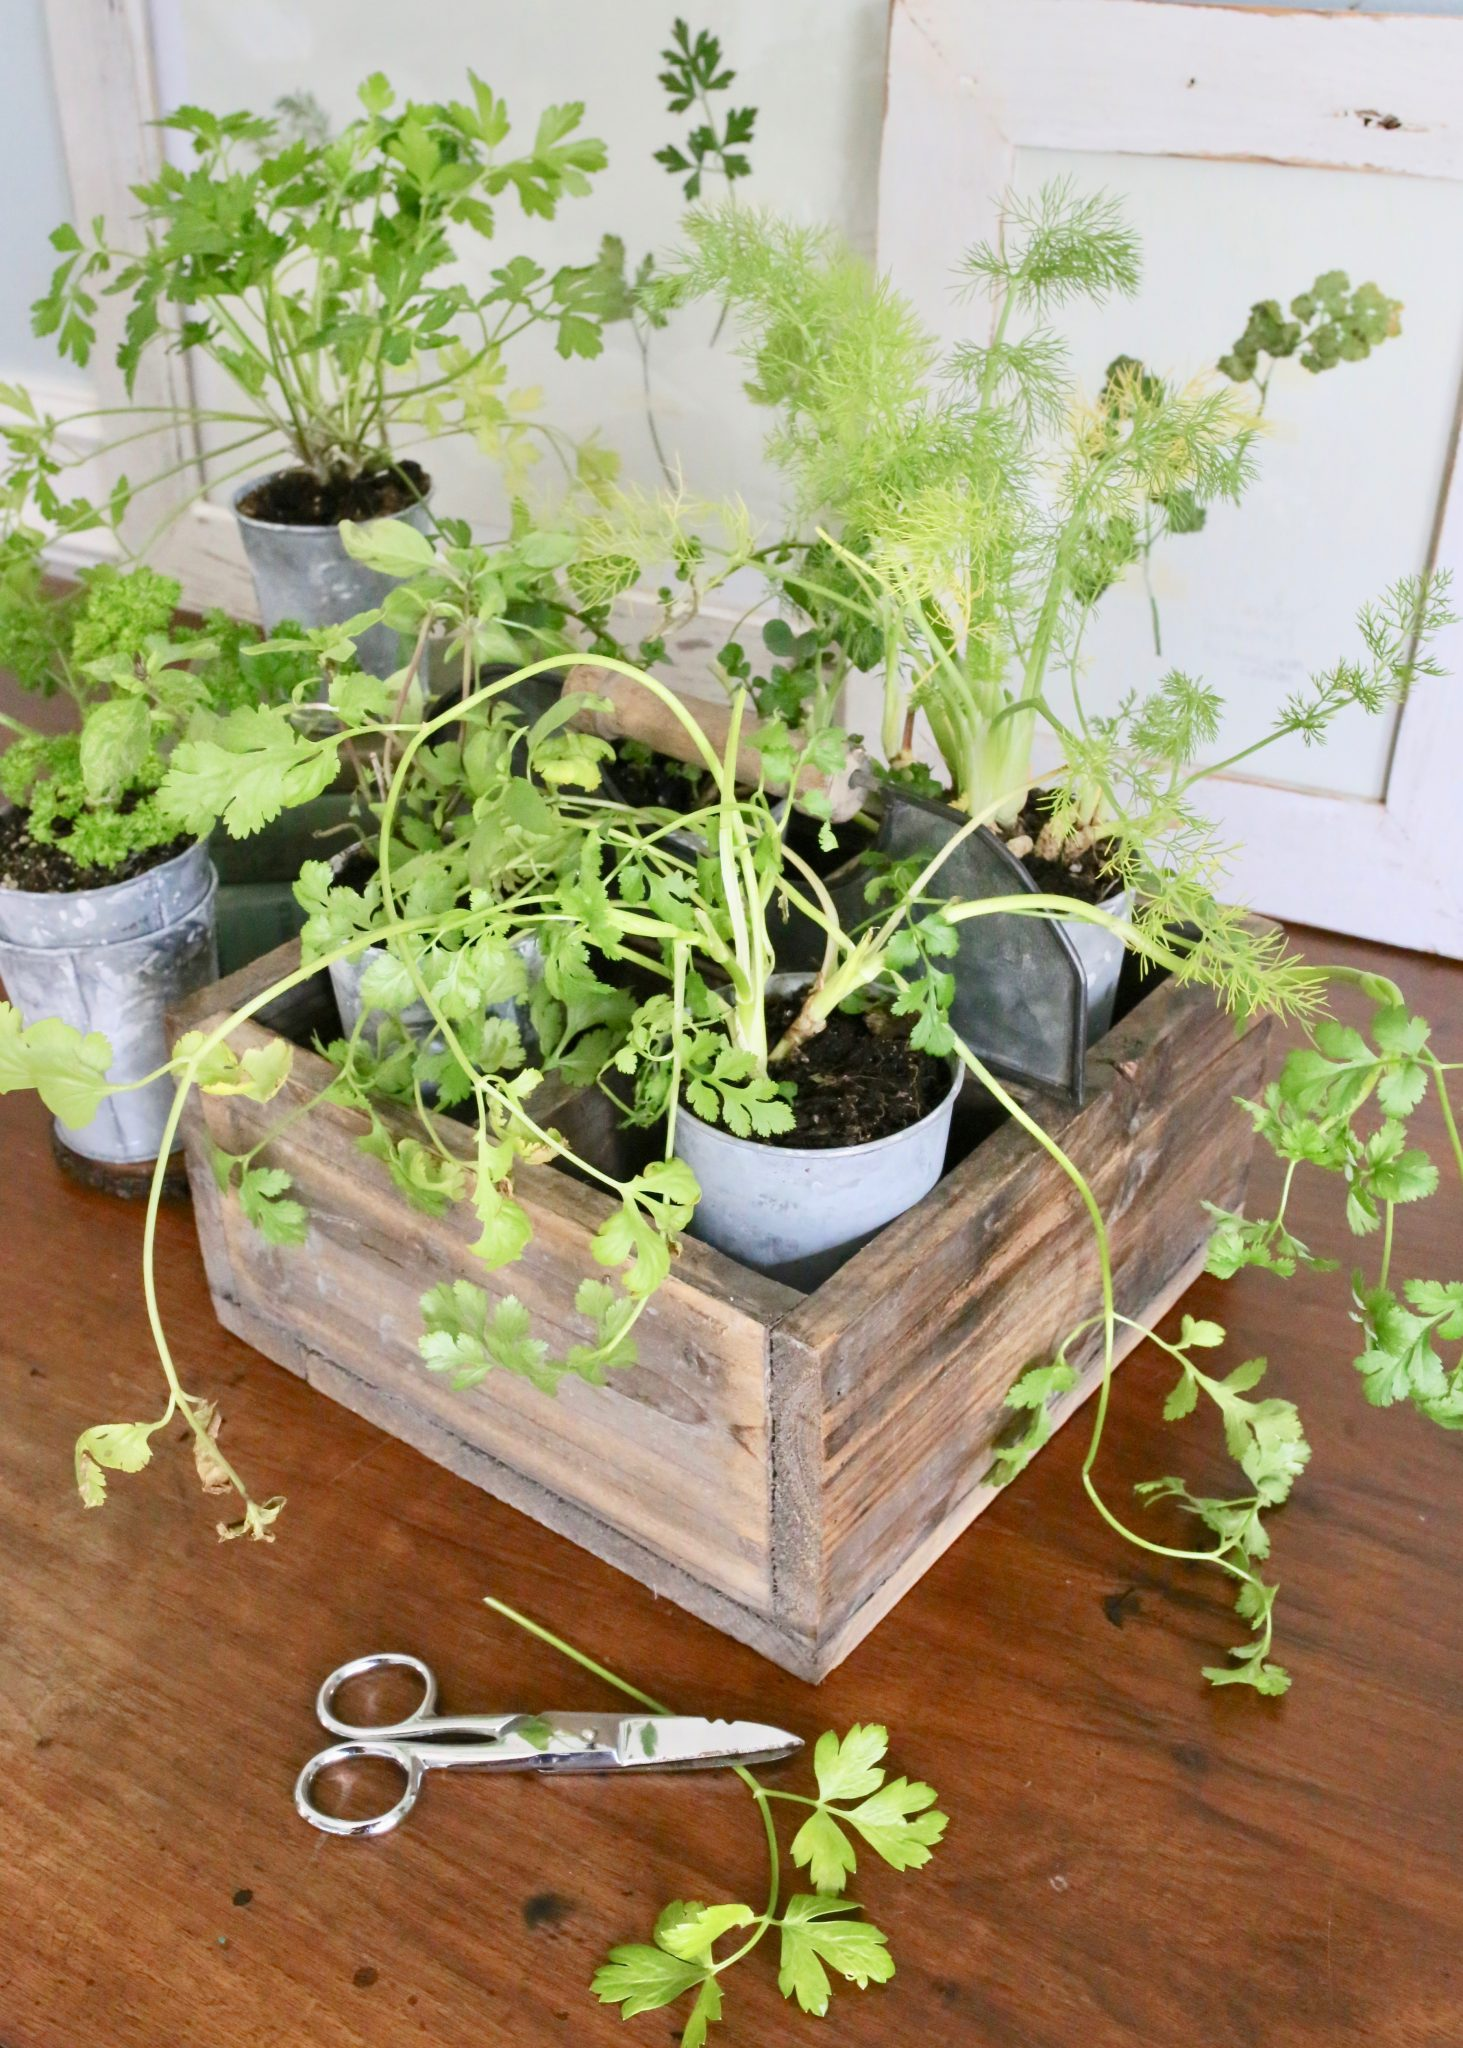 How To Press Plants Flowers Or Herbs In The Microwave Cutertudor